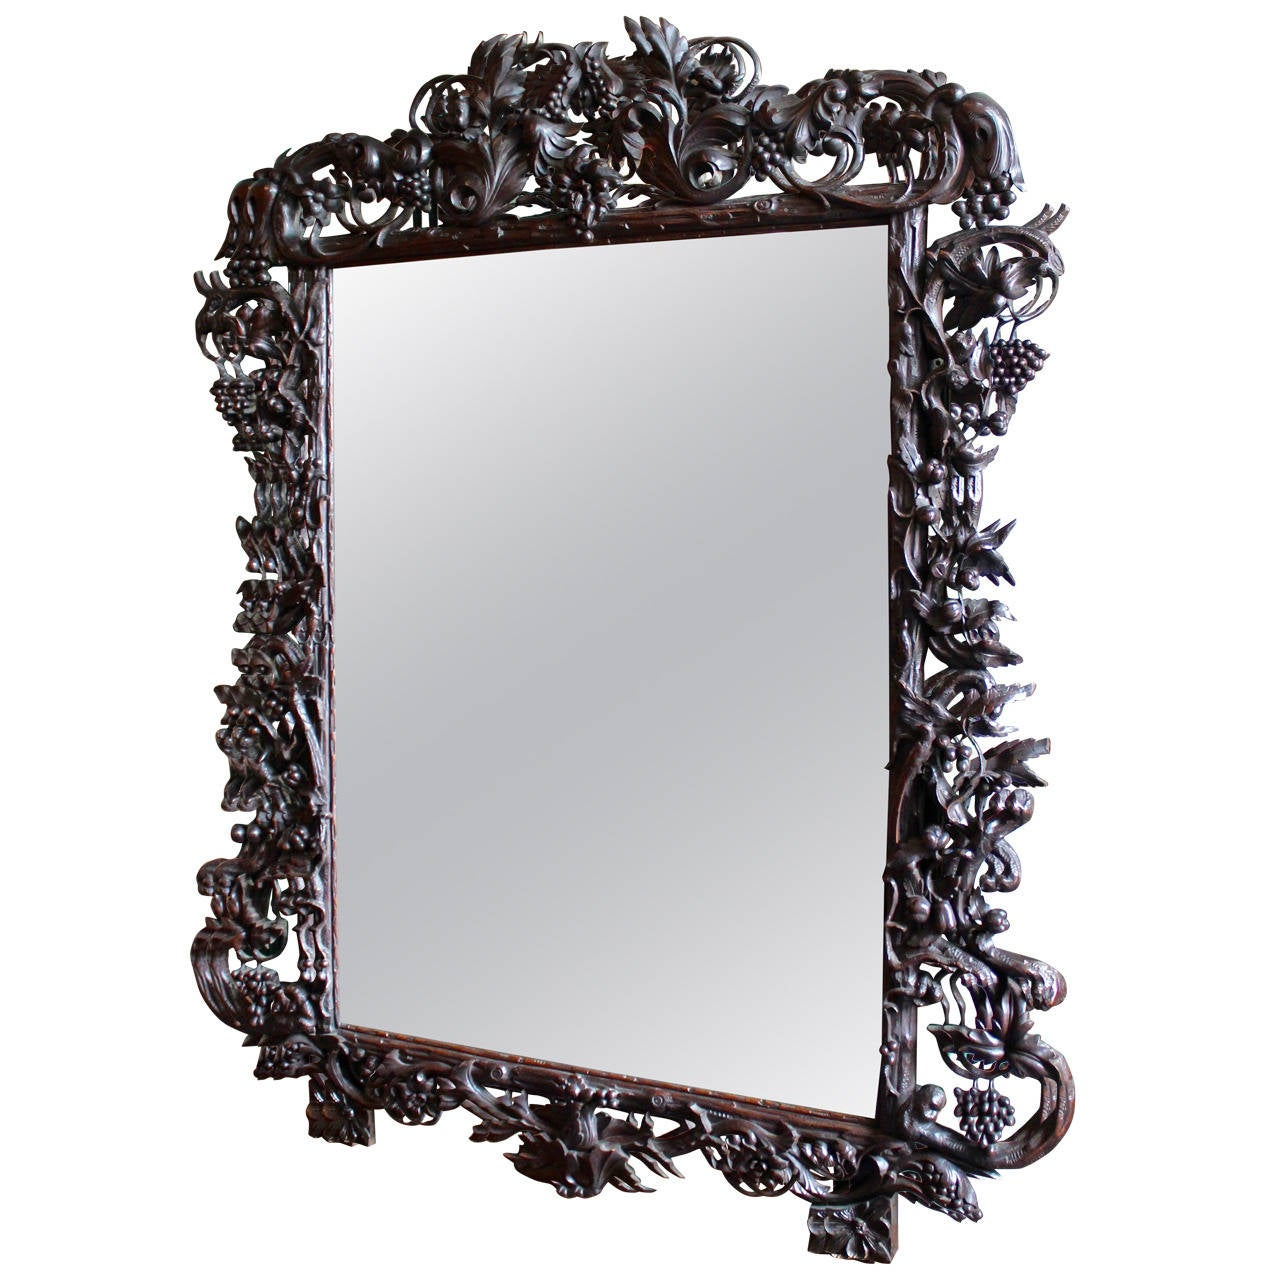 Late 19th century ornate large black forest french mirror for Black framed floor length mirror